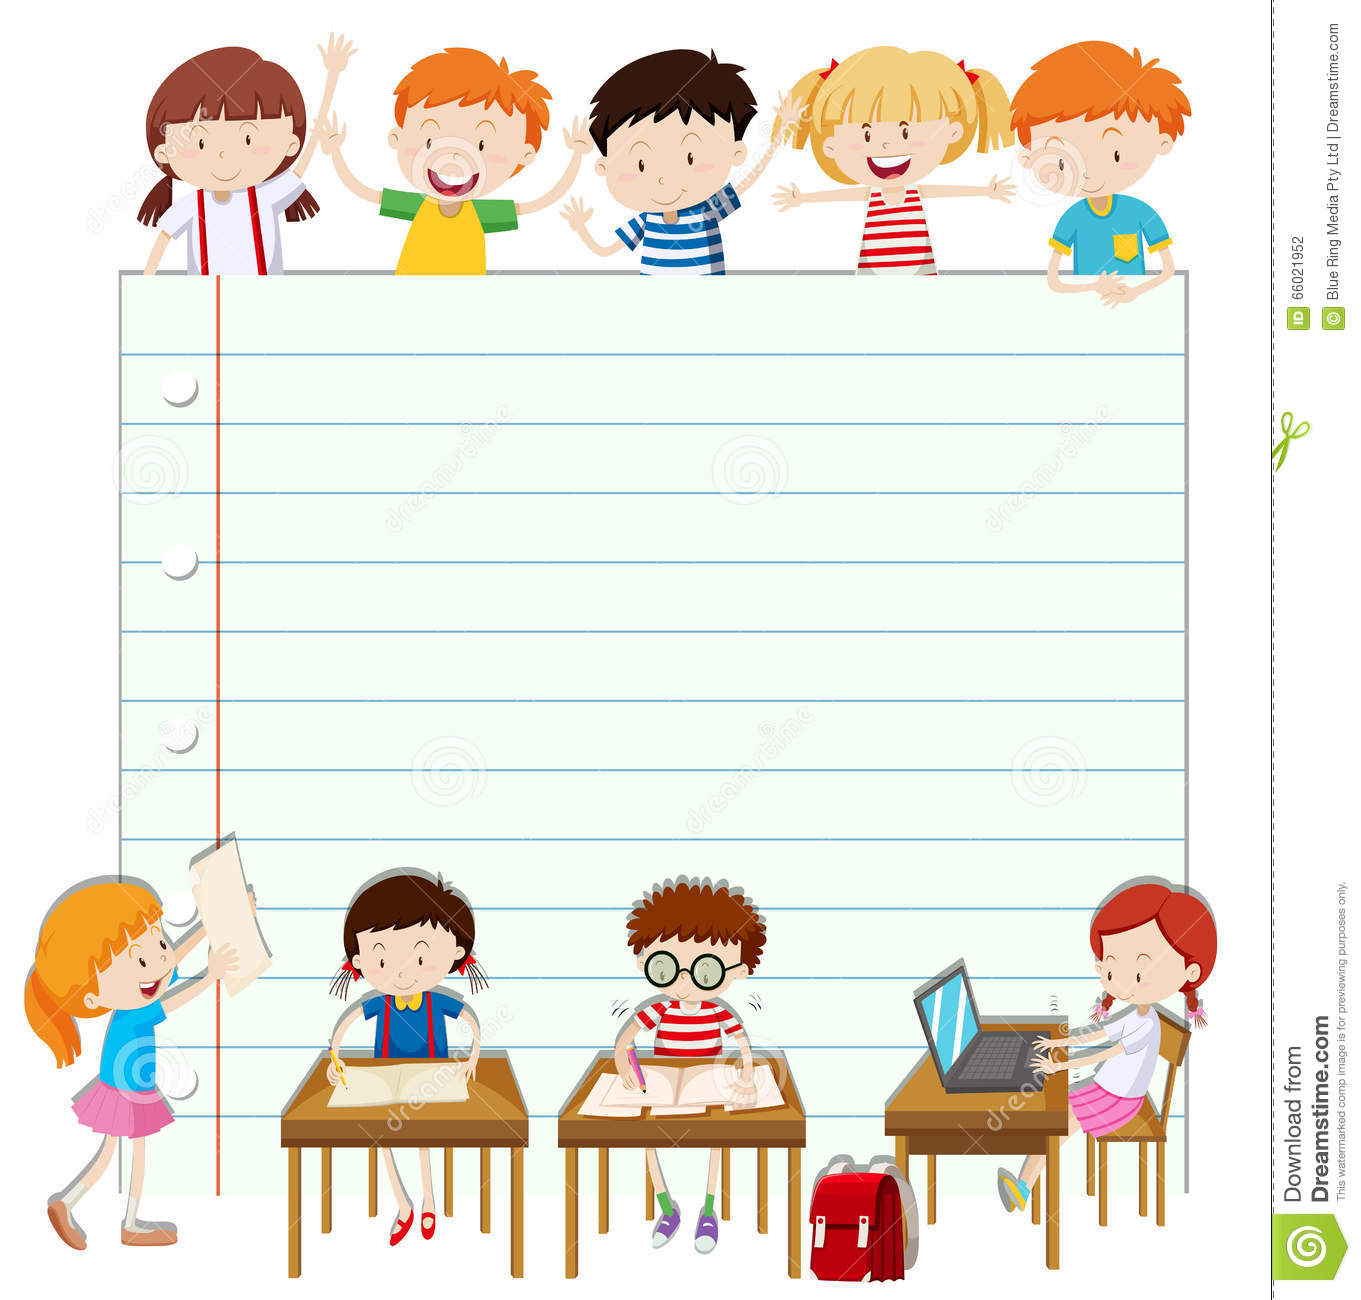 Classroom Design Paper : Line paper design with children in classroom stock vector